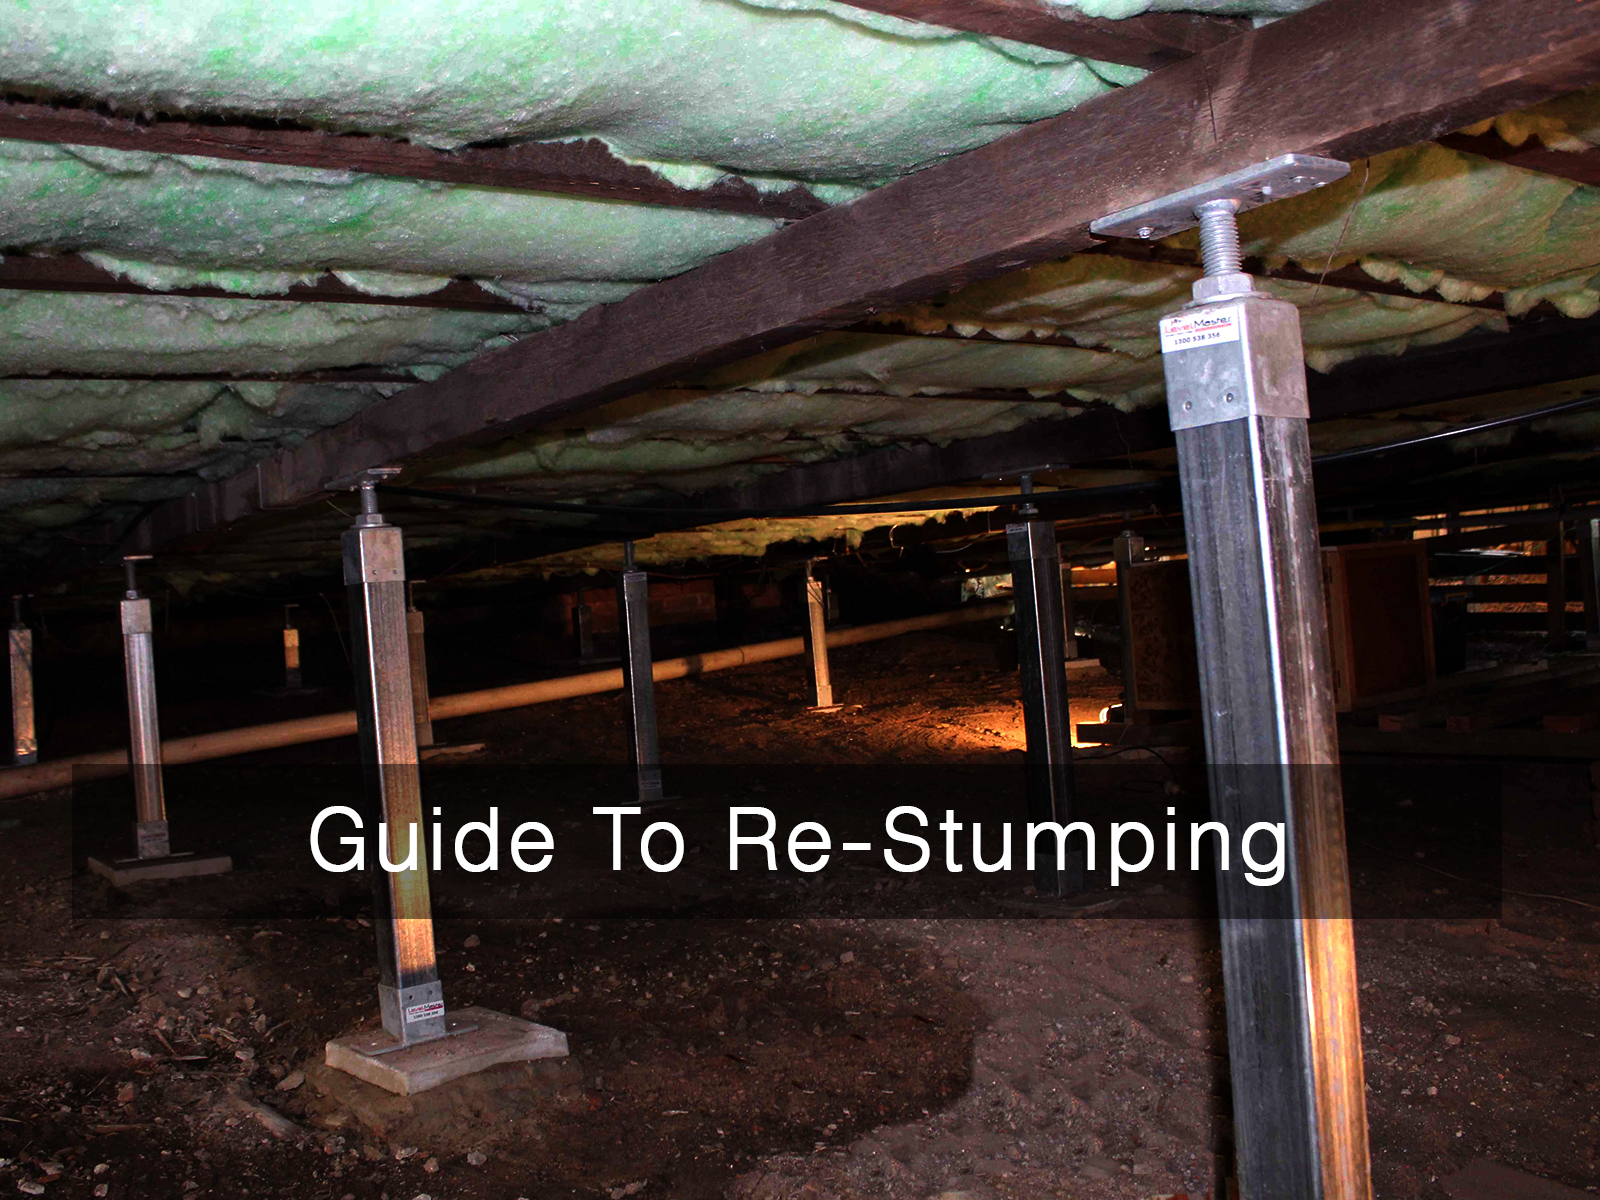 Restumping guide